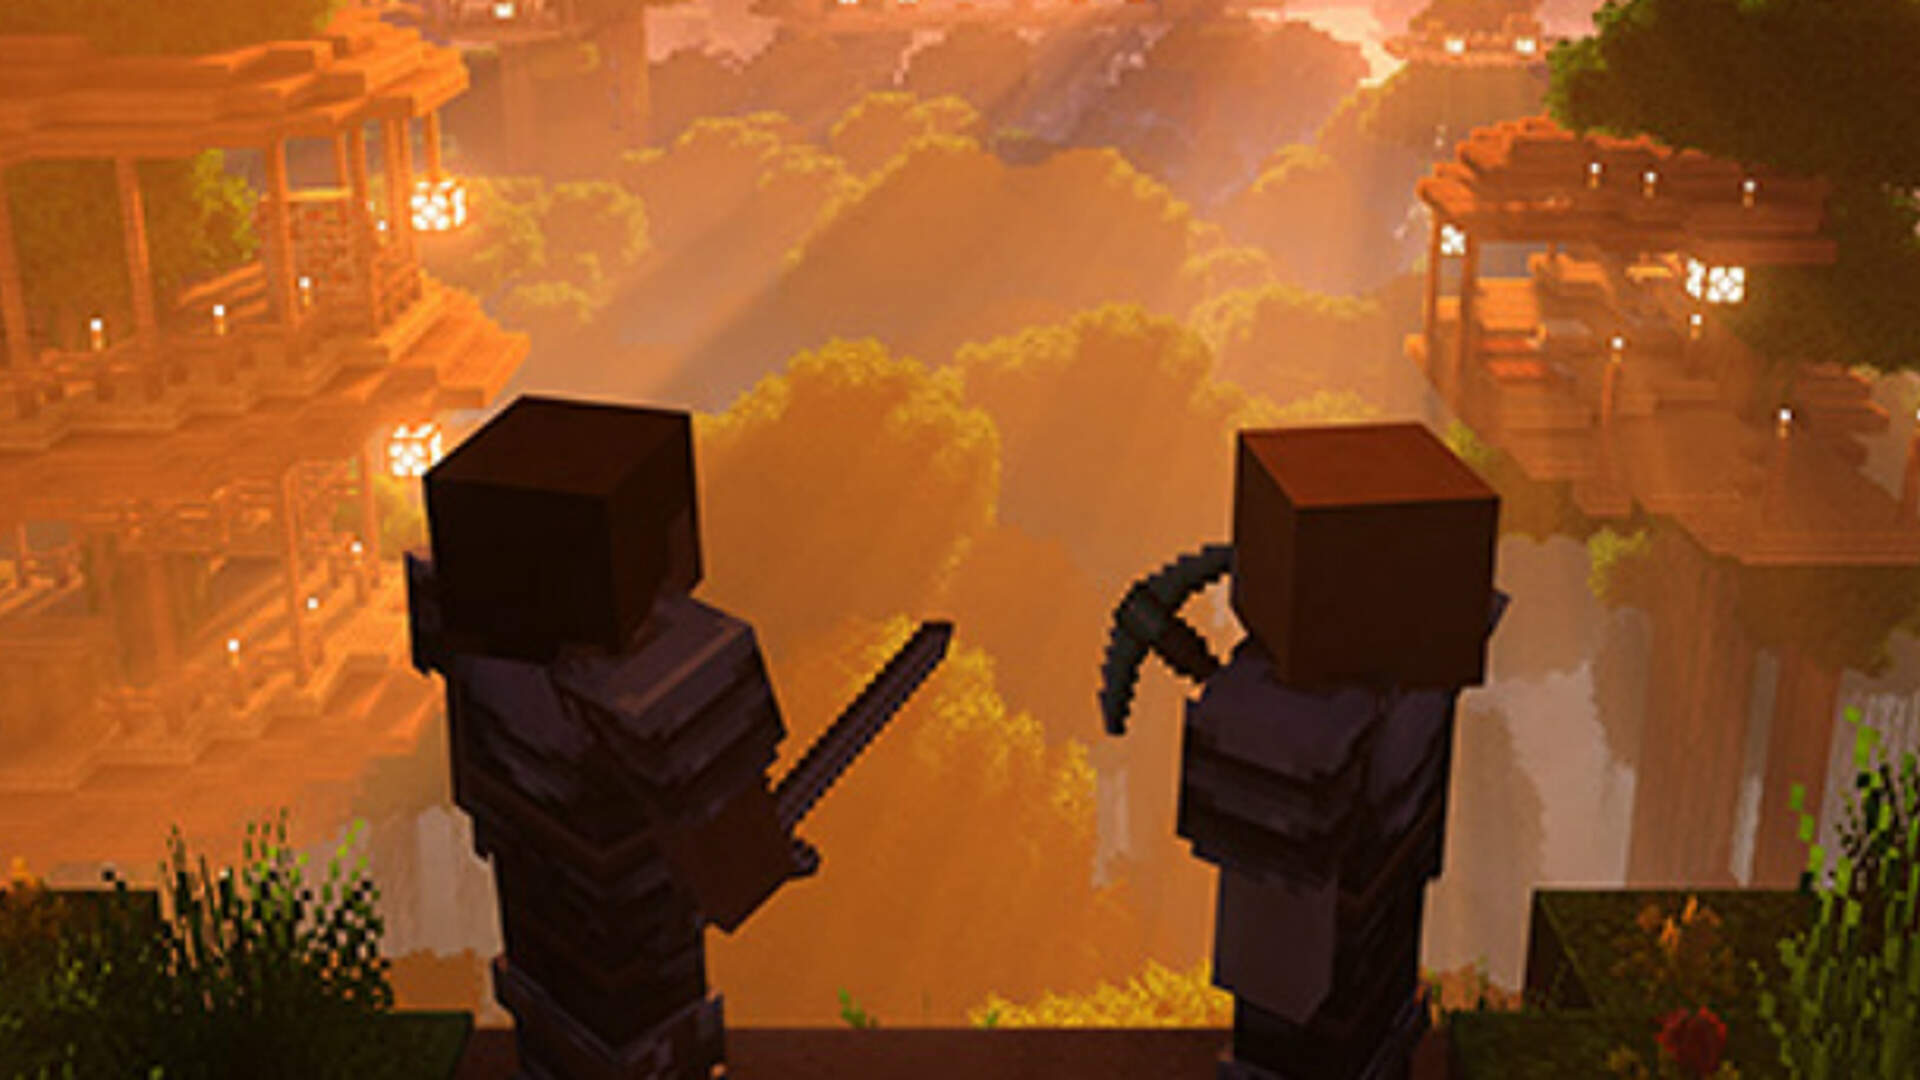 Minecraft Has Already Taught 85 Million Students How to Code